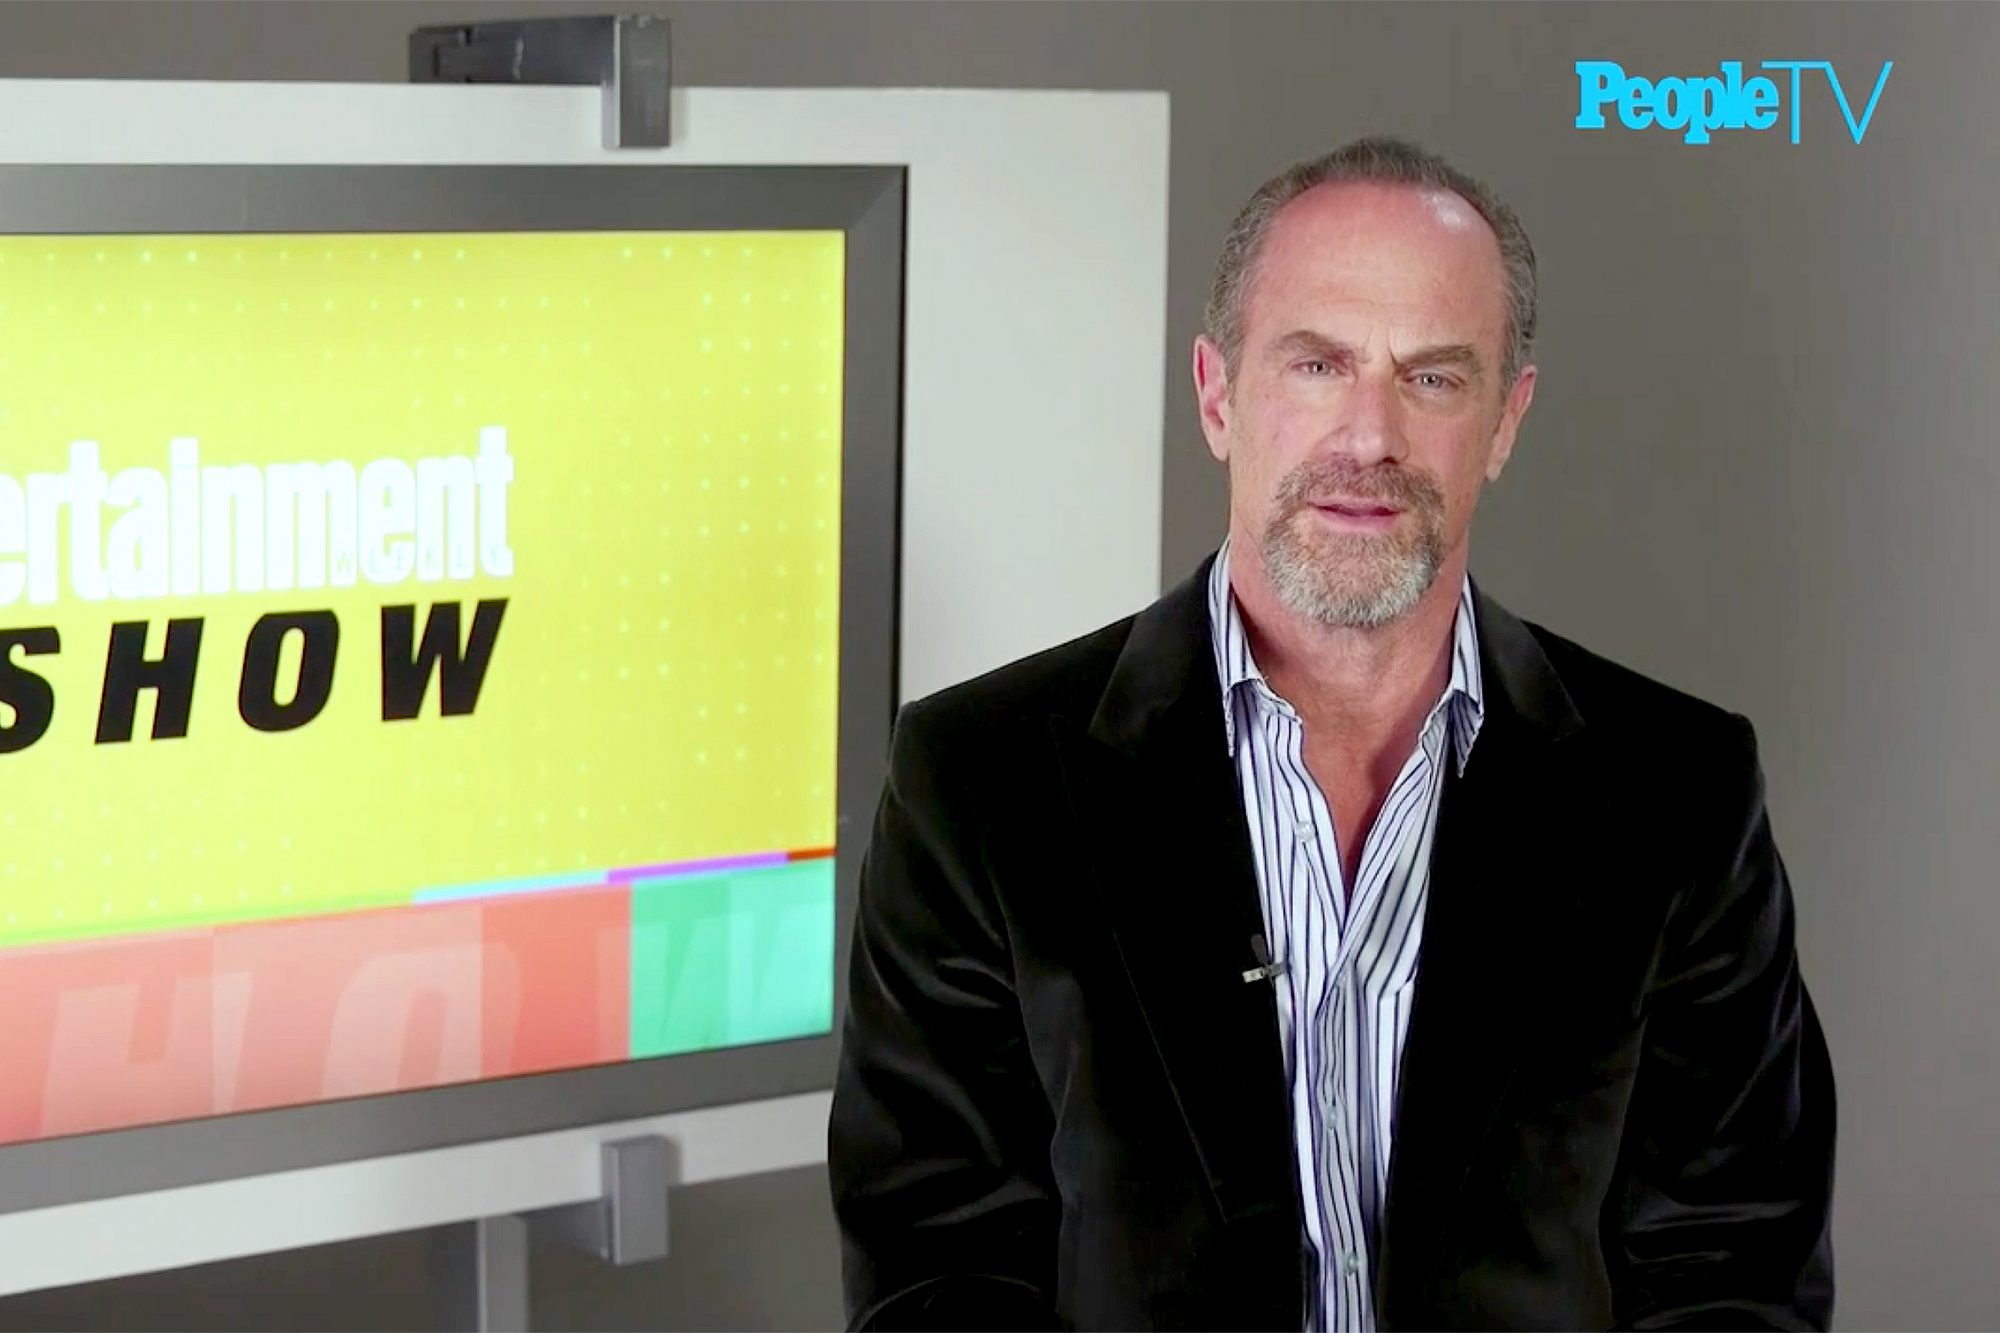 Christopher Meloni PeopleTV interview